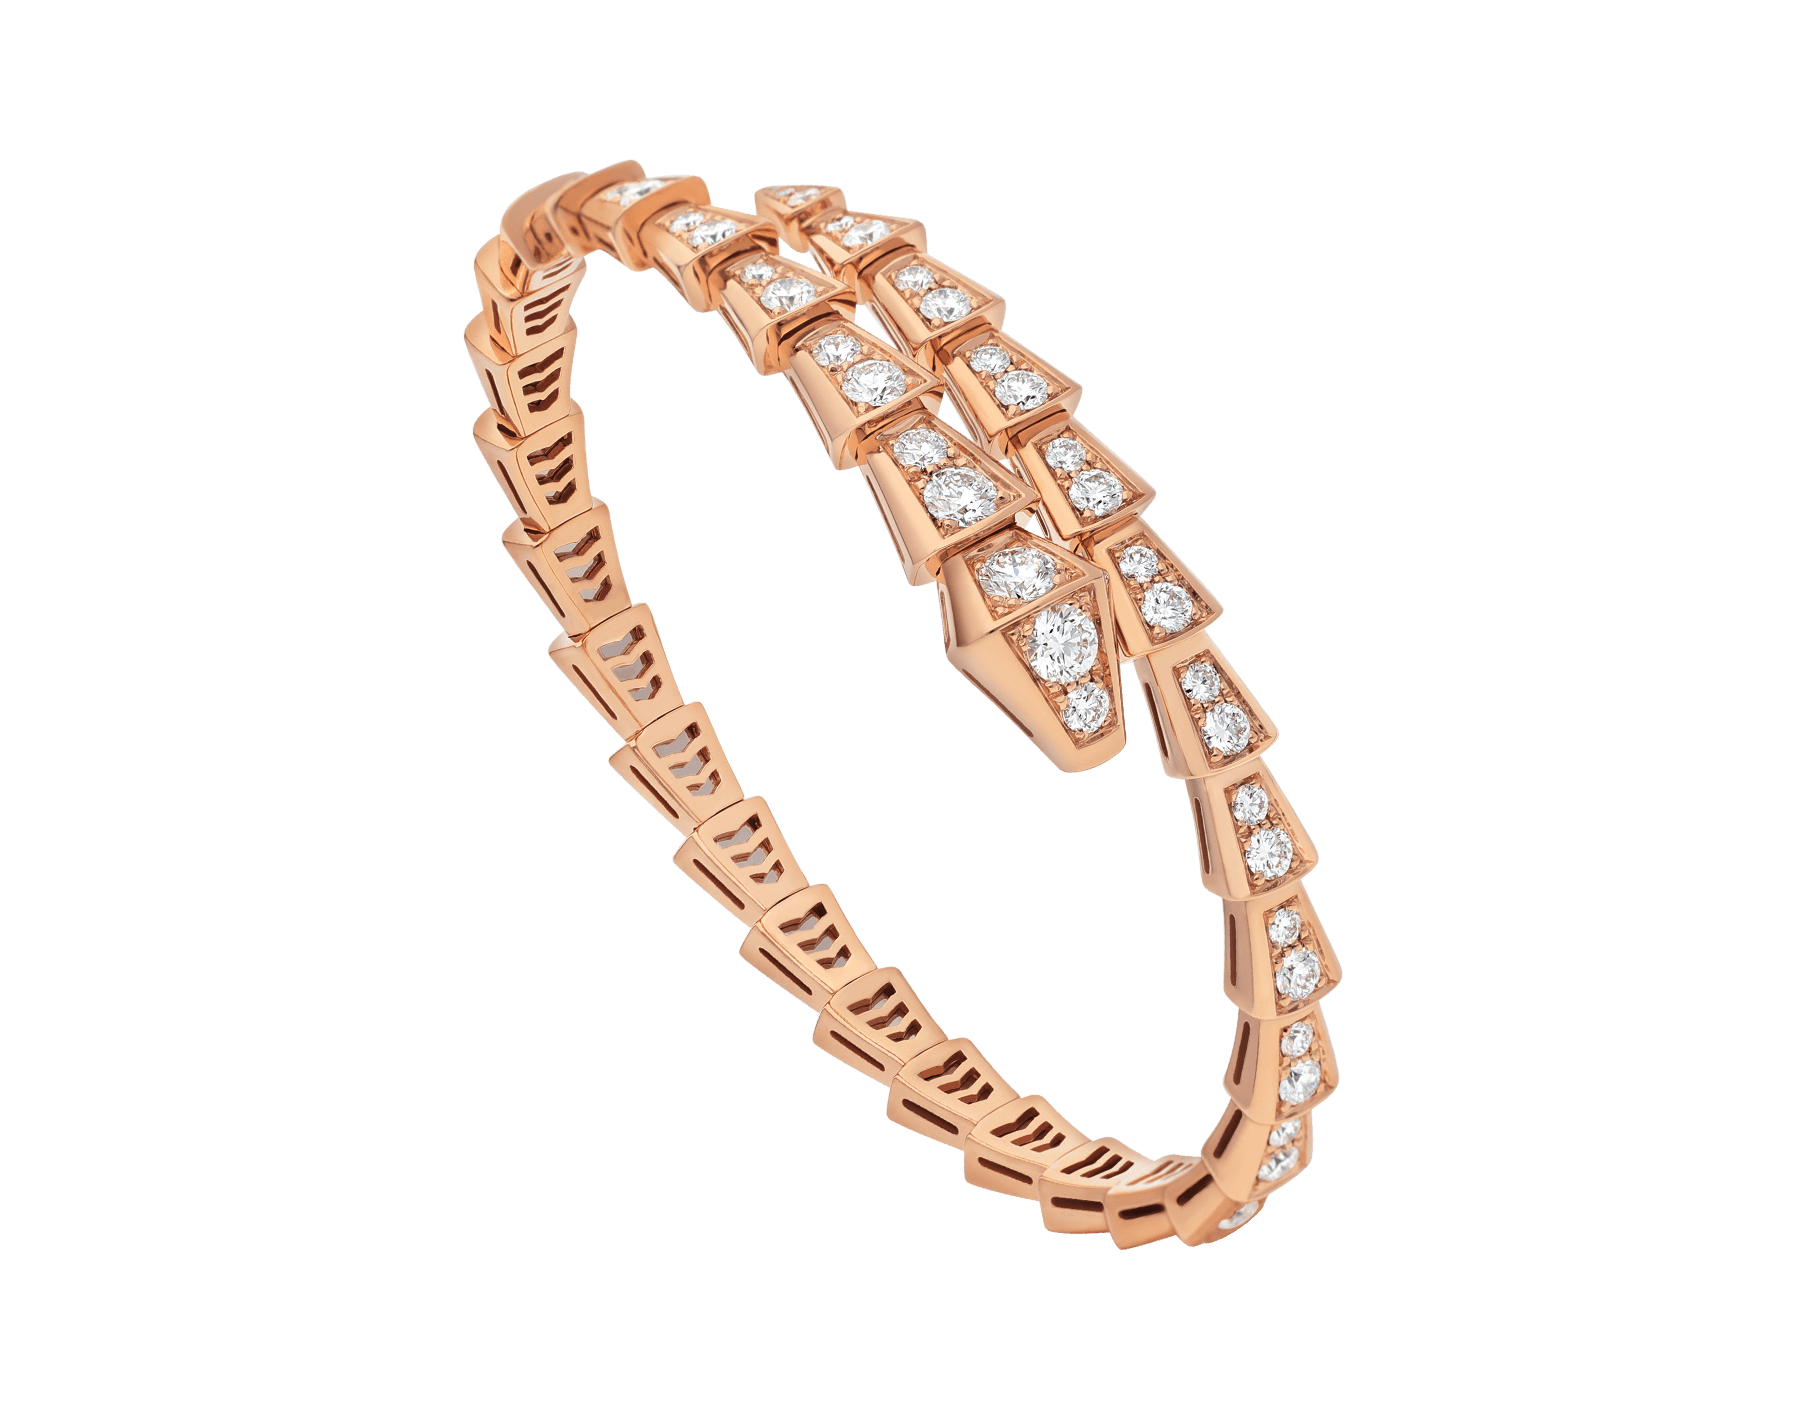 Serpenti Viperone-coil thin bracelet in 18 kt rose gold and full pavé diamonds . BR858084 image 1